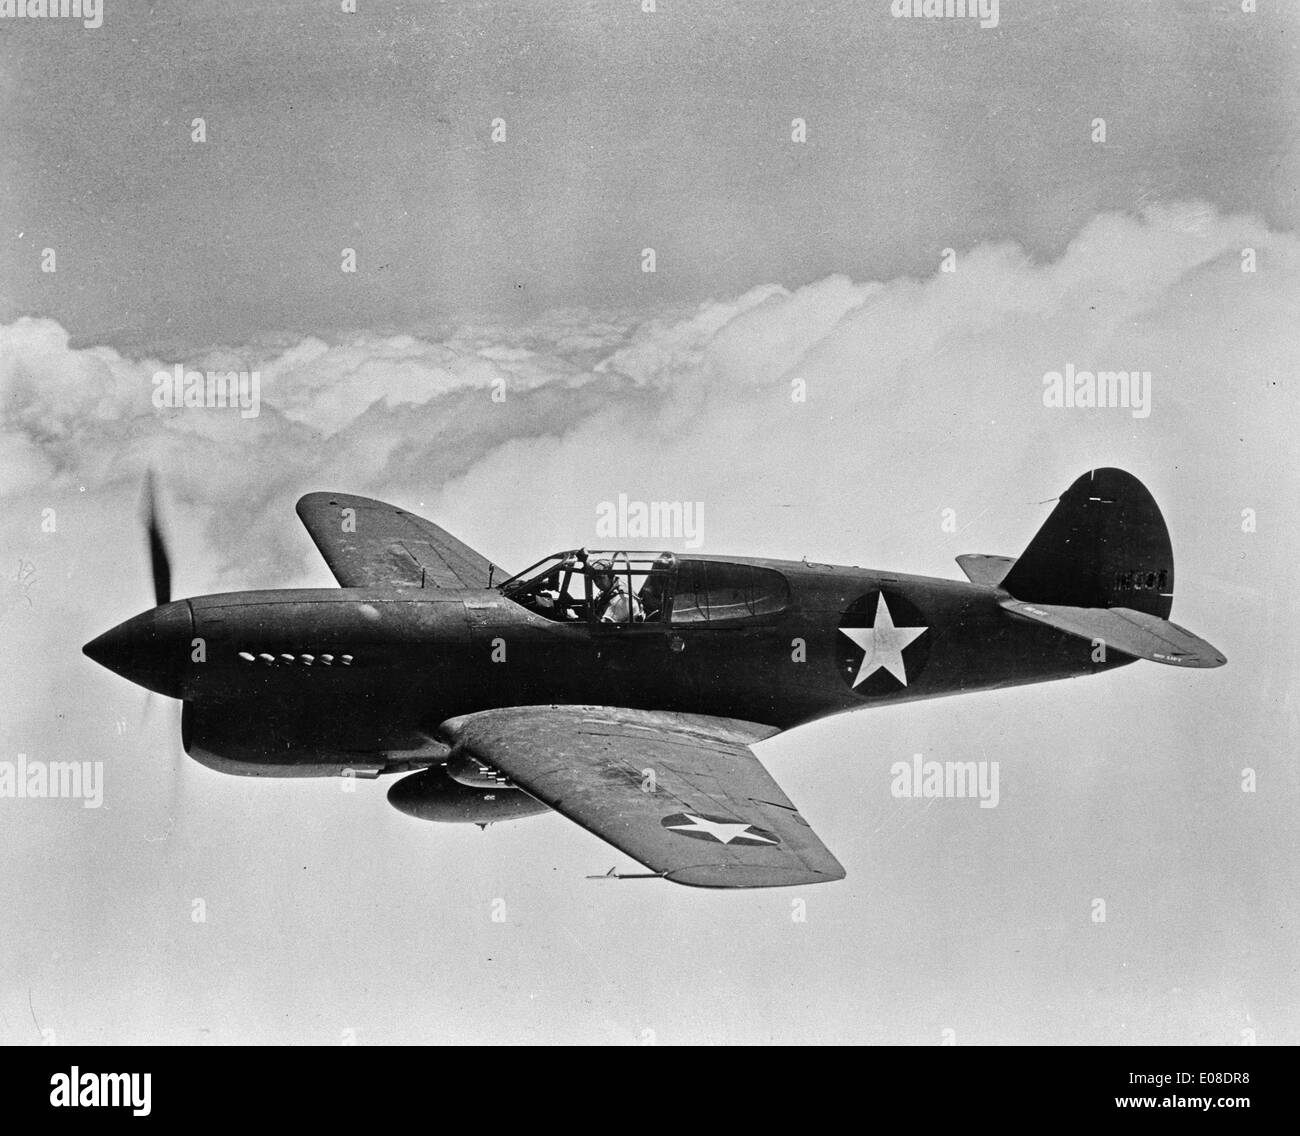 Curtiss P-40 Warhawk, American single-engined, single-seat, all-metal fighter and ground-attack aircraft - Stock Image